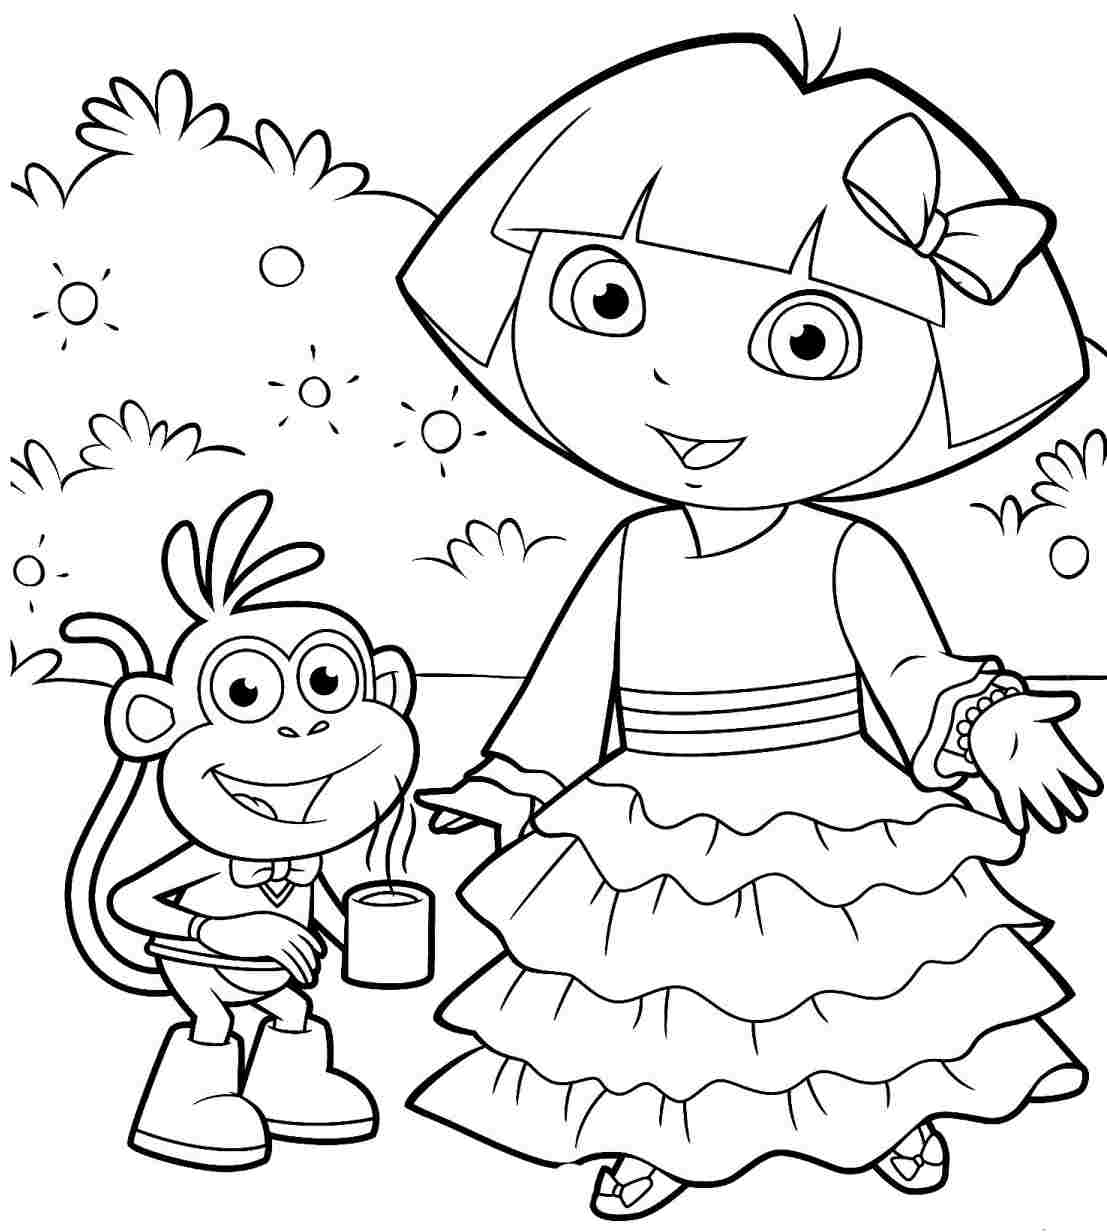 dora printables coloring craftsactvities and worksheets for preschooltoddler and printables coloring dora